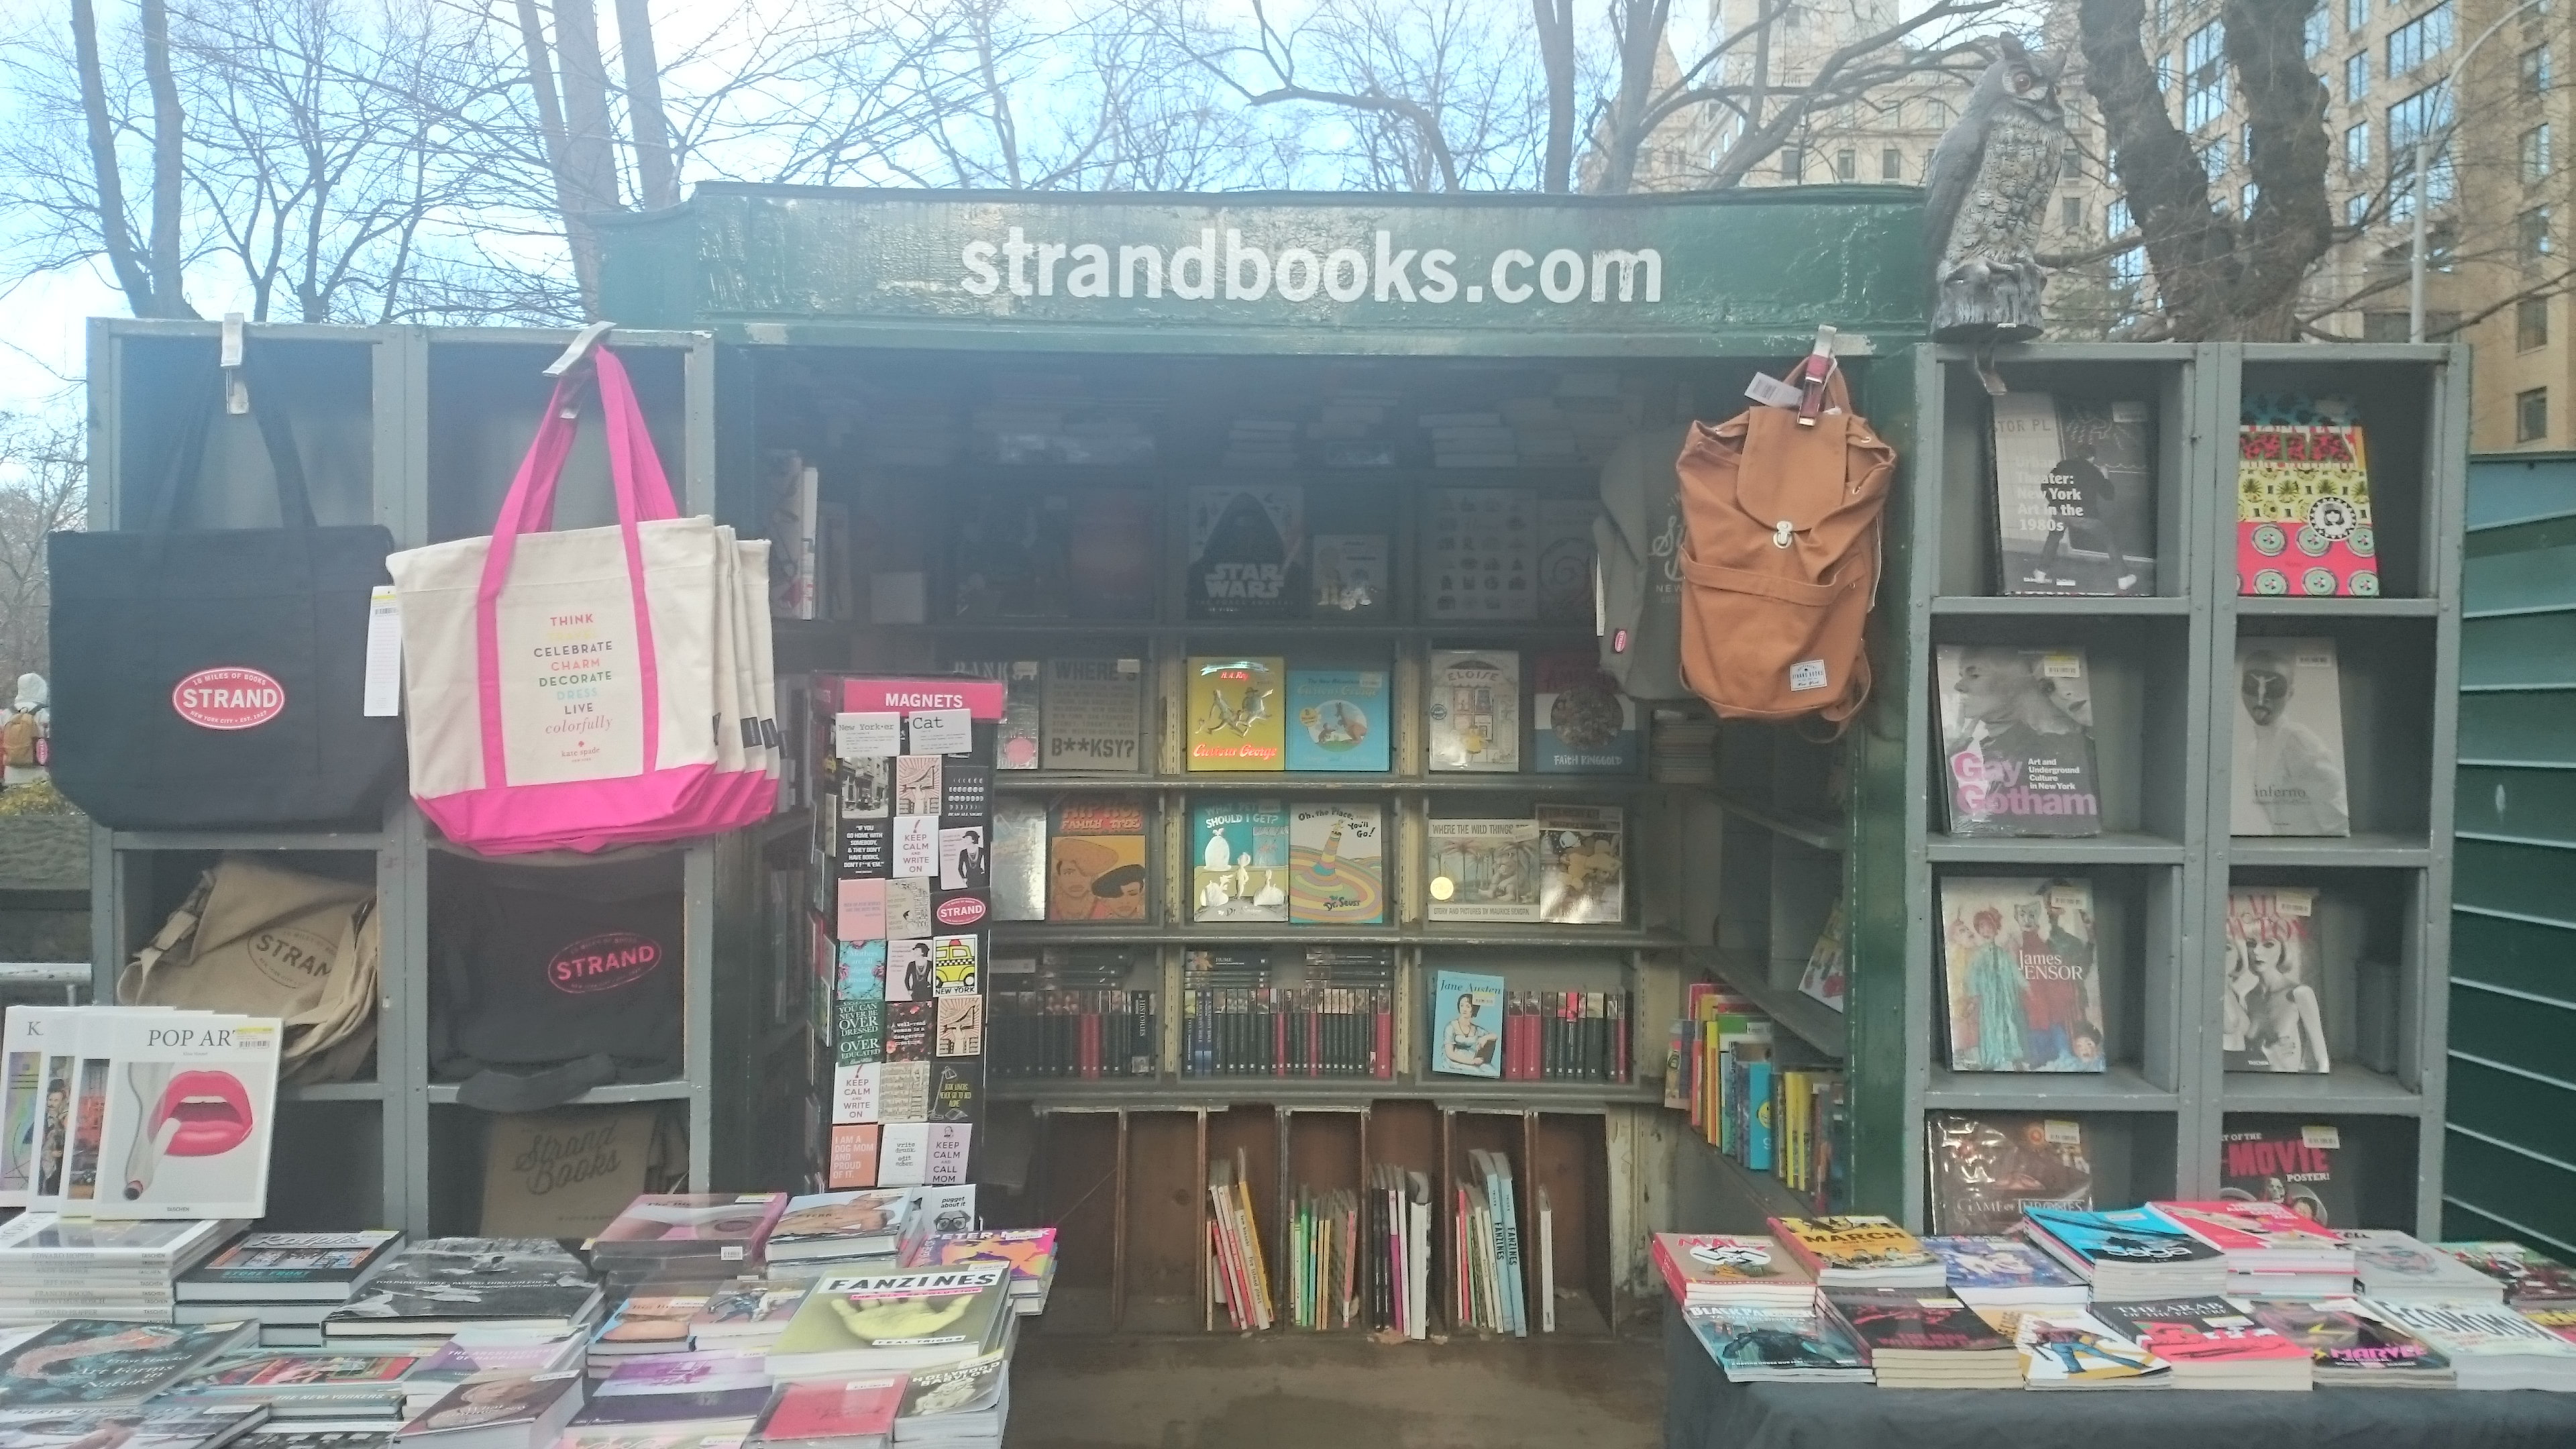 5 Bandedessin�e (bd) It's A Neutral Word That Coversic Books, Graphic  Novels And All Books With Images And Bubbles French People Are Great Bd  Readers